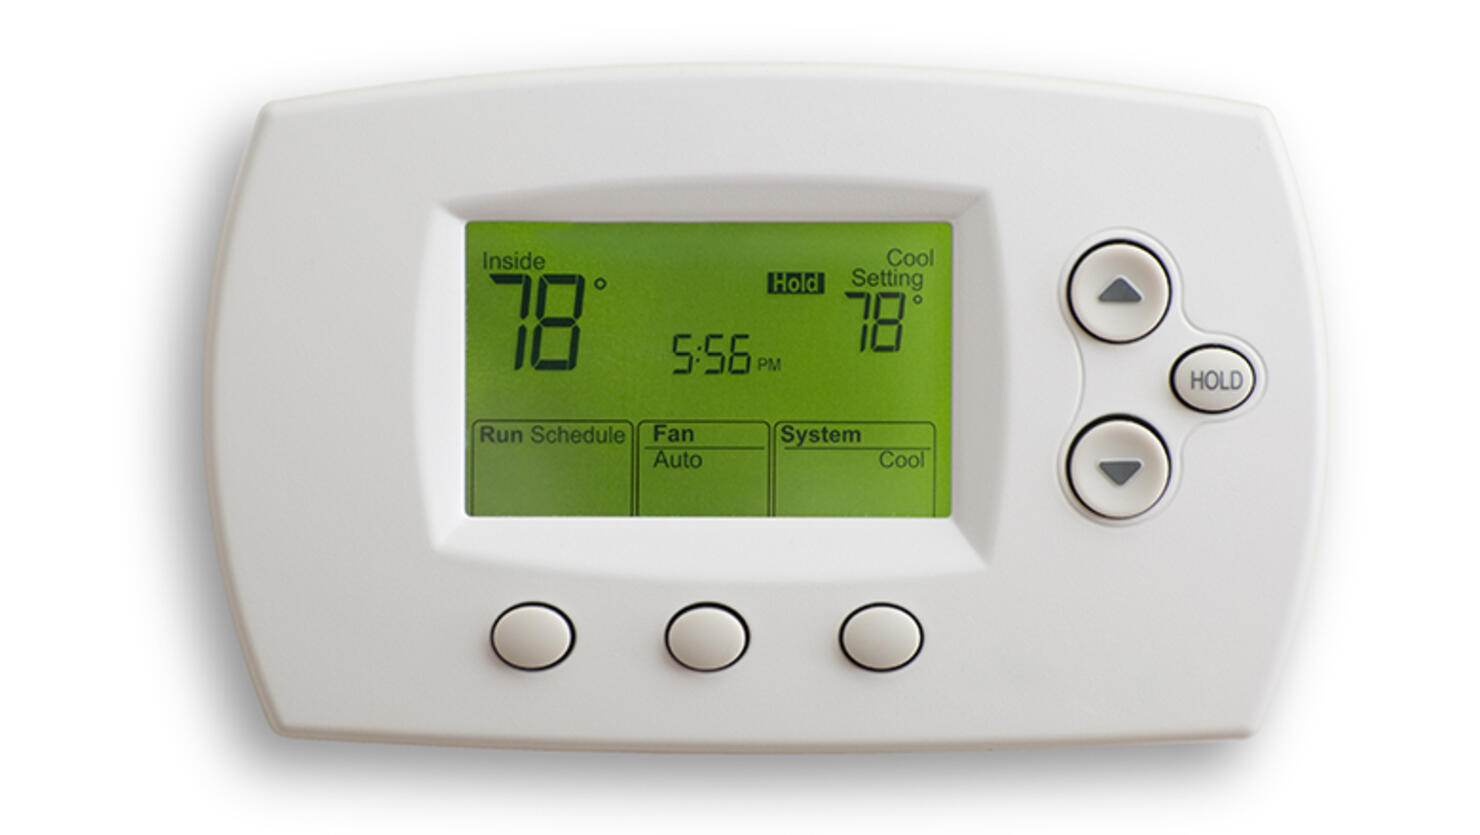 Digital thermostat on 78 degrees